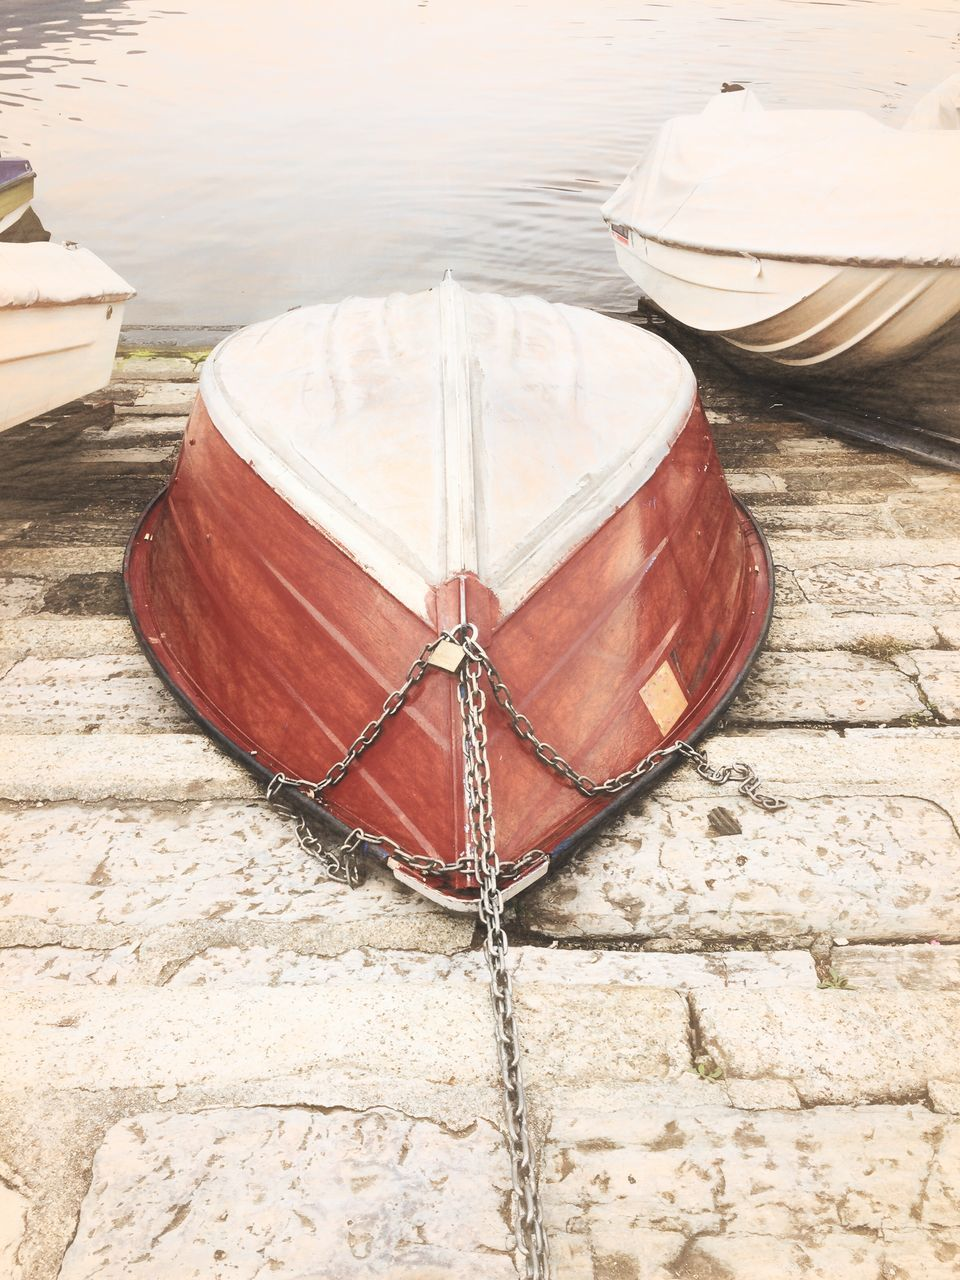 water, nautical vessel, transportation, mode of transportation, no people, day, moored, rope, nature, wood - material, high angle view, outdoors, lake, rowboat, architecture, red, sunlight, wall